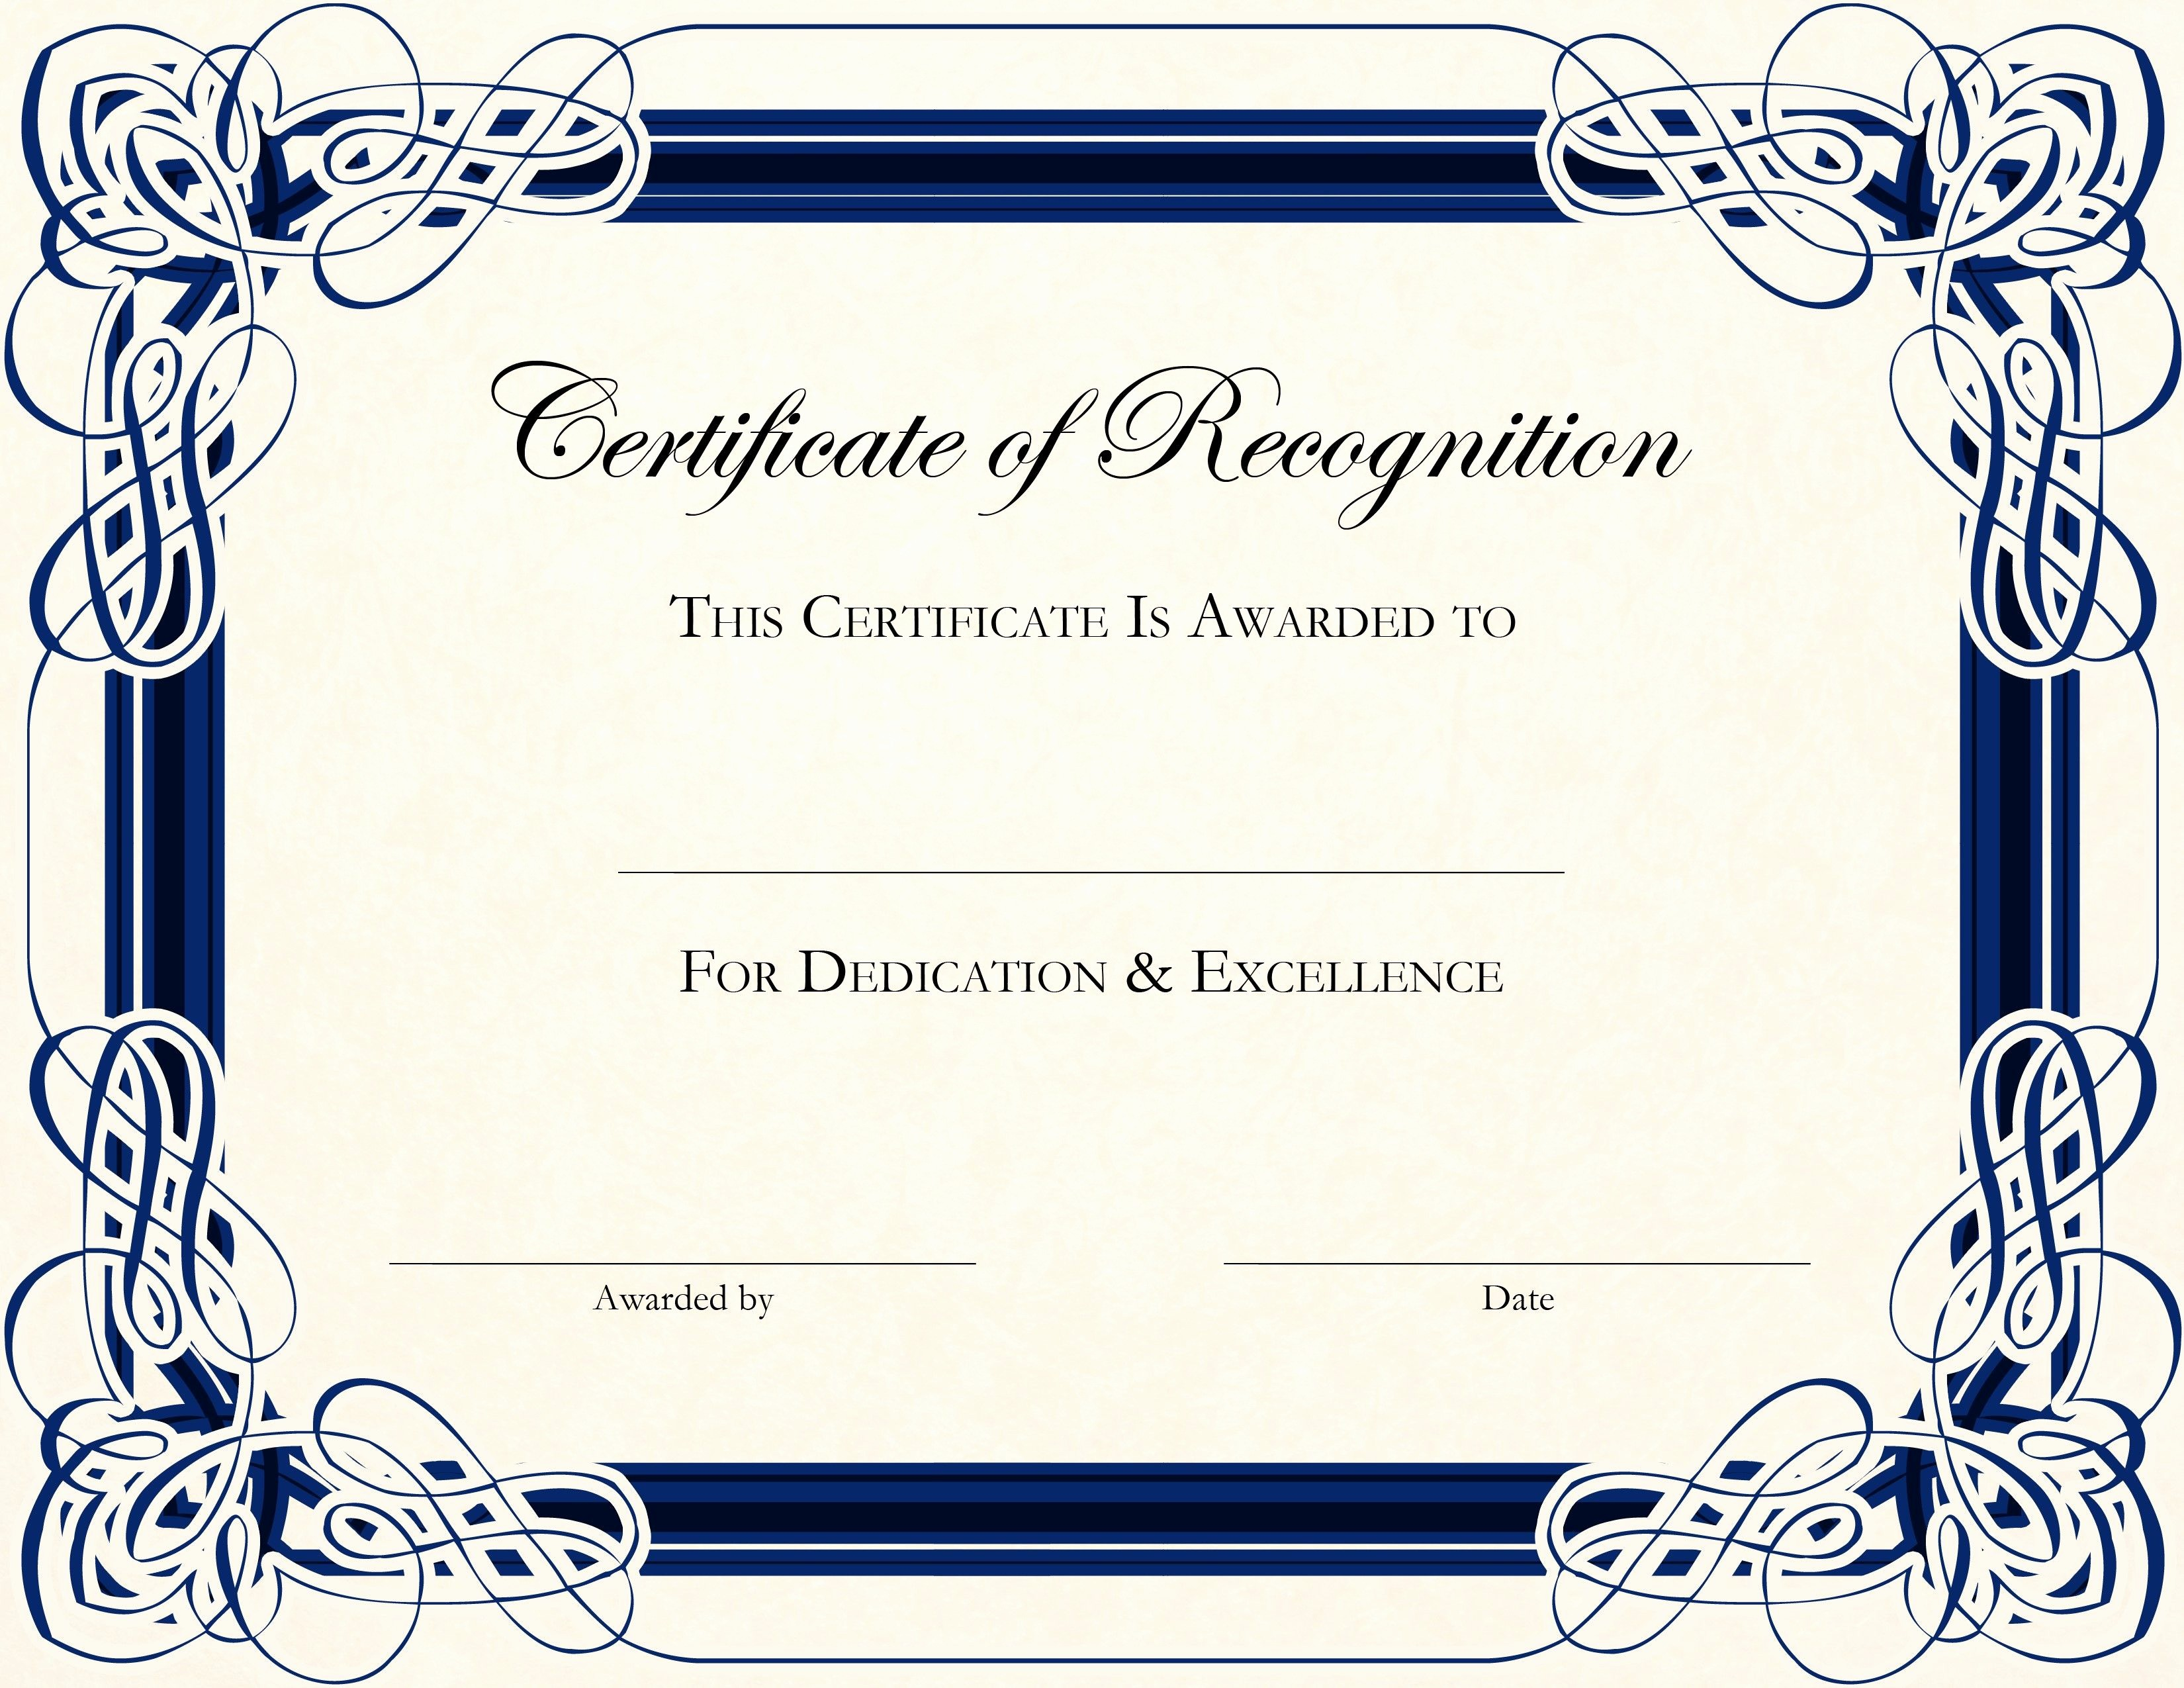 Printable Certificate Of Appreciation Template Fresh Free Printable Certificate Templates for Teachers